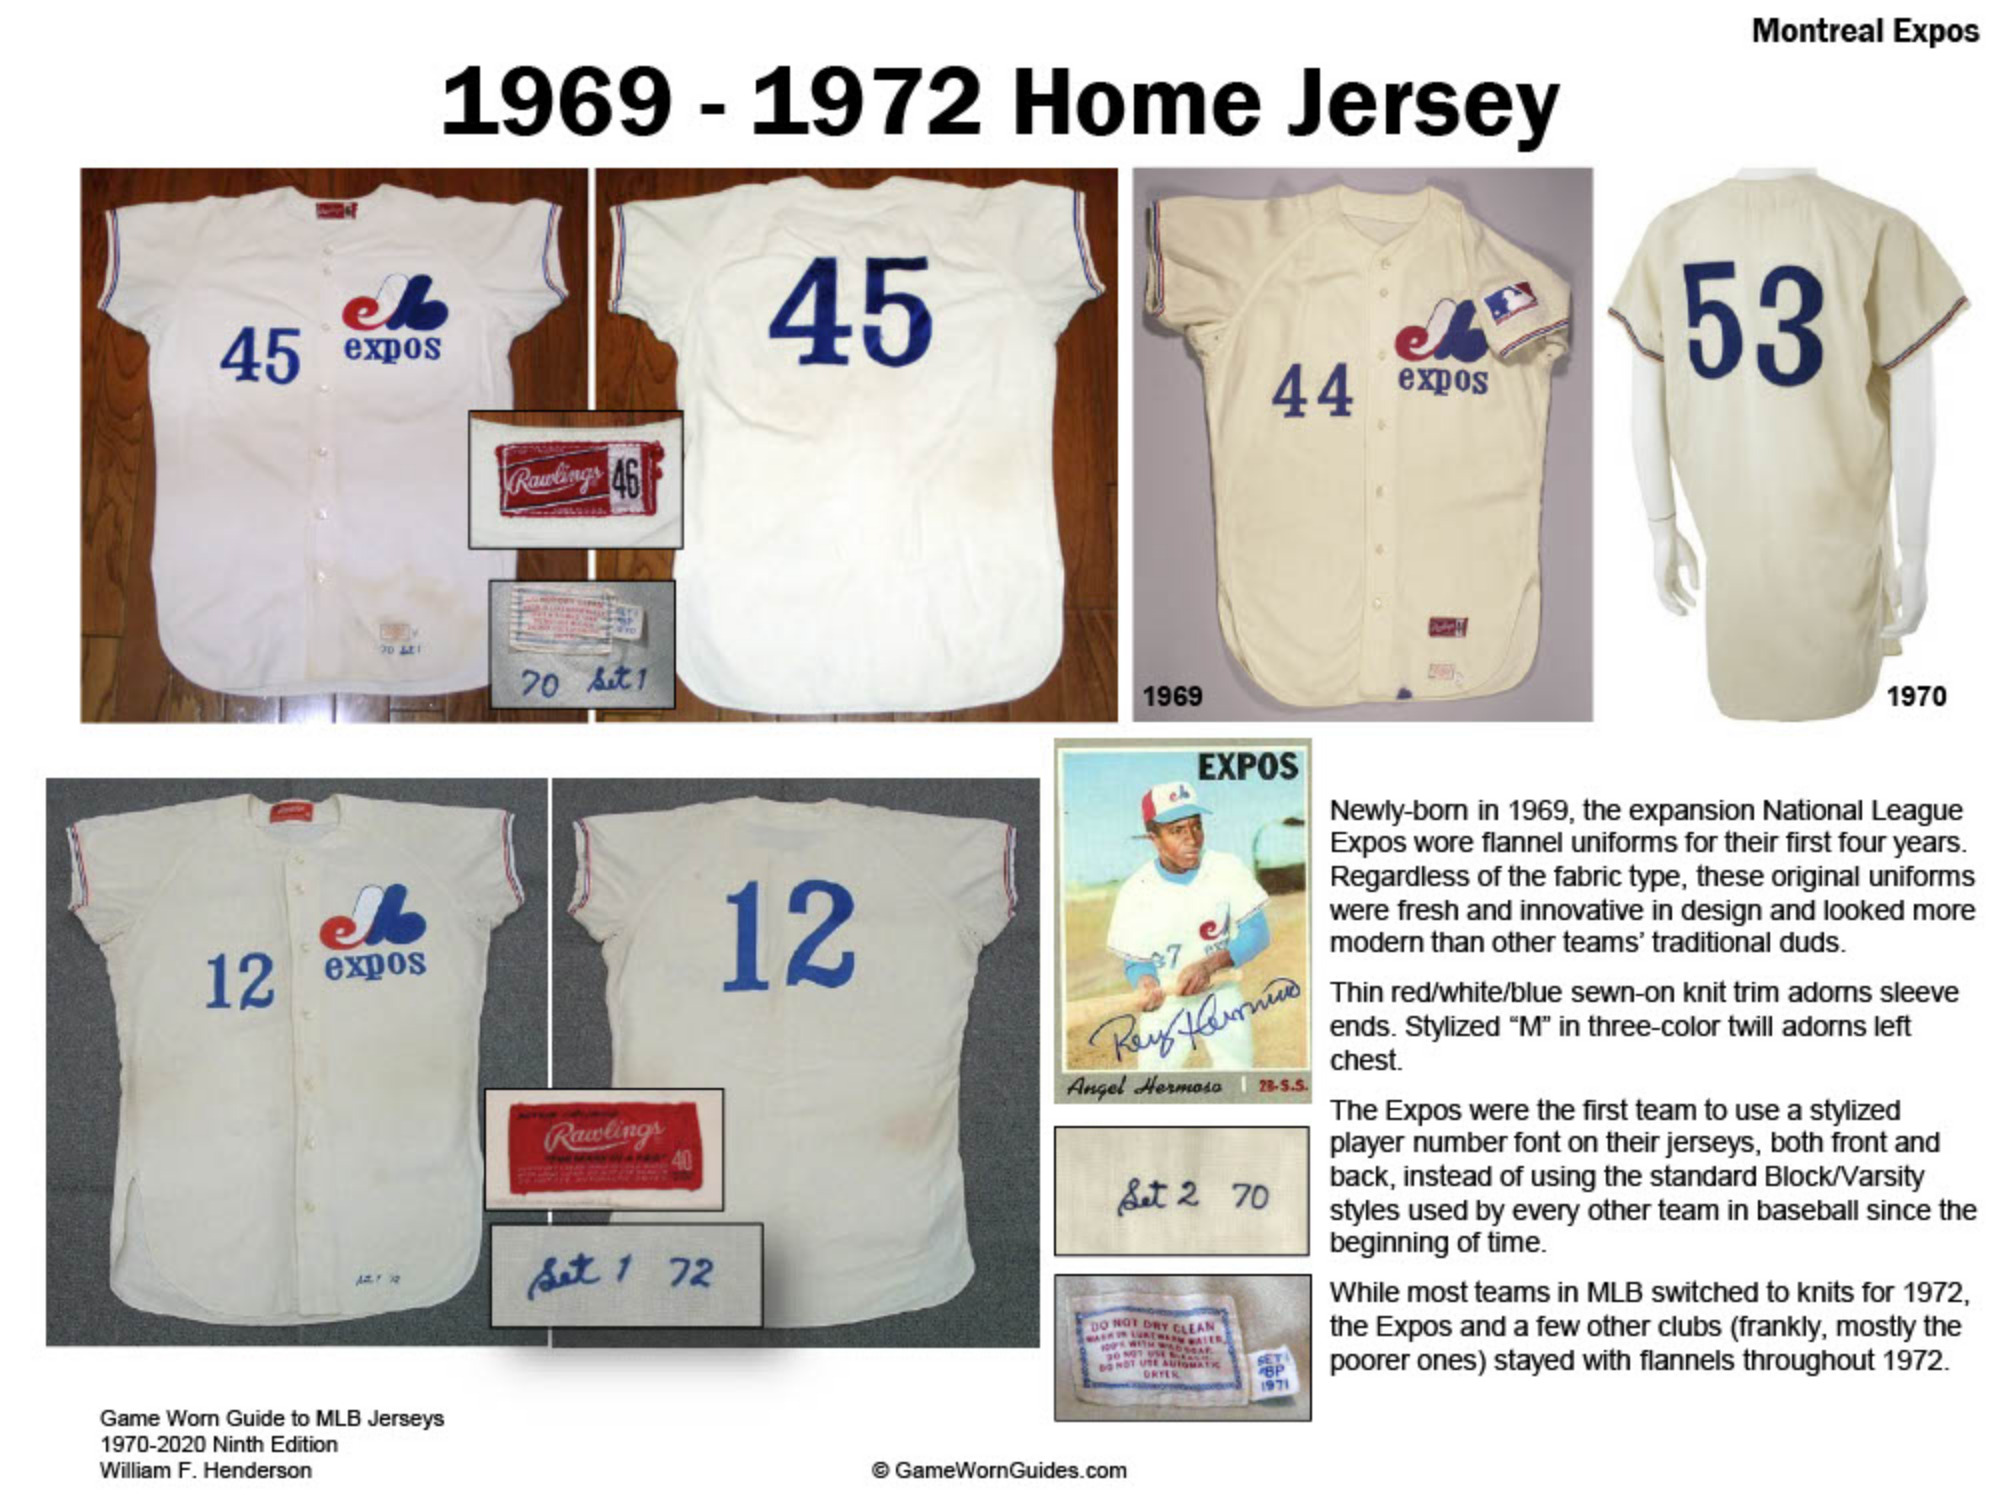 Game Worn Guide to Montreal Expos/Washington Nationals Jerseys (1969-2020)